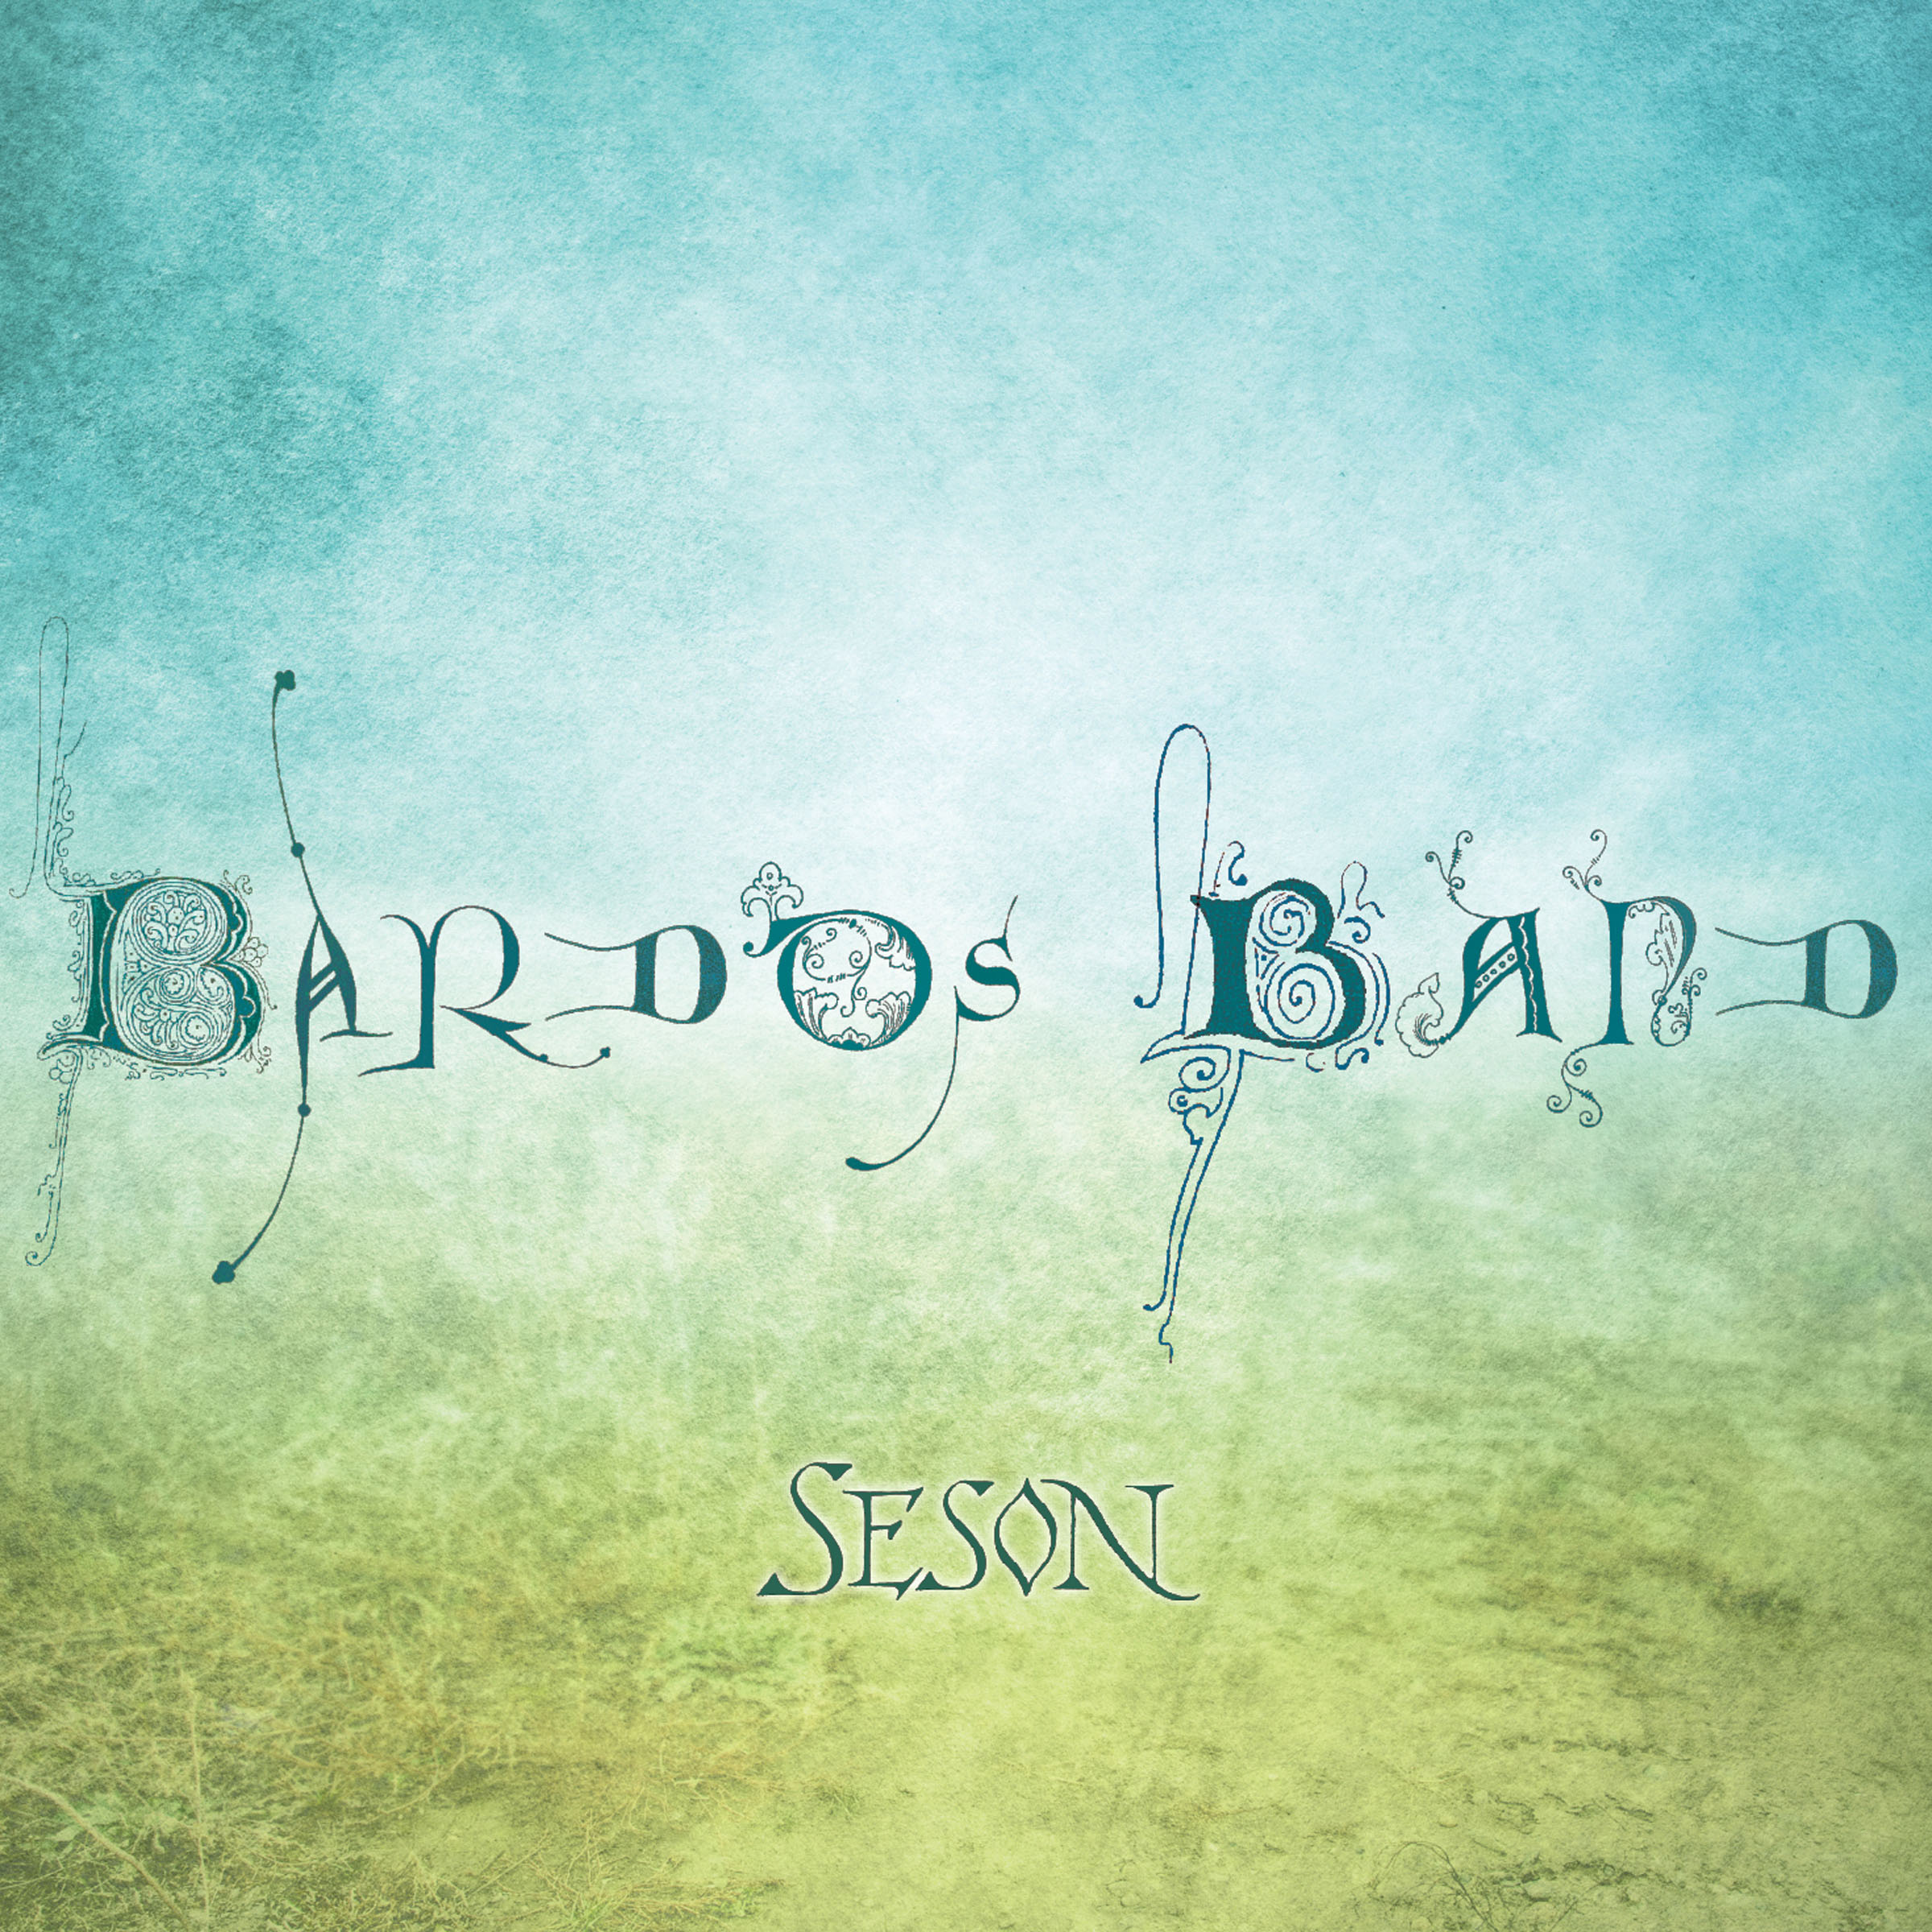 bcr008-seson-CD-cover-image